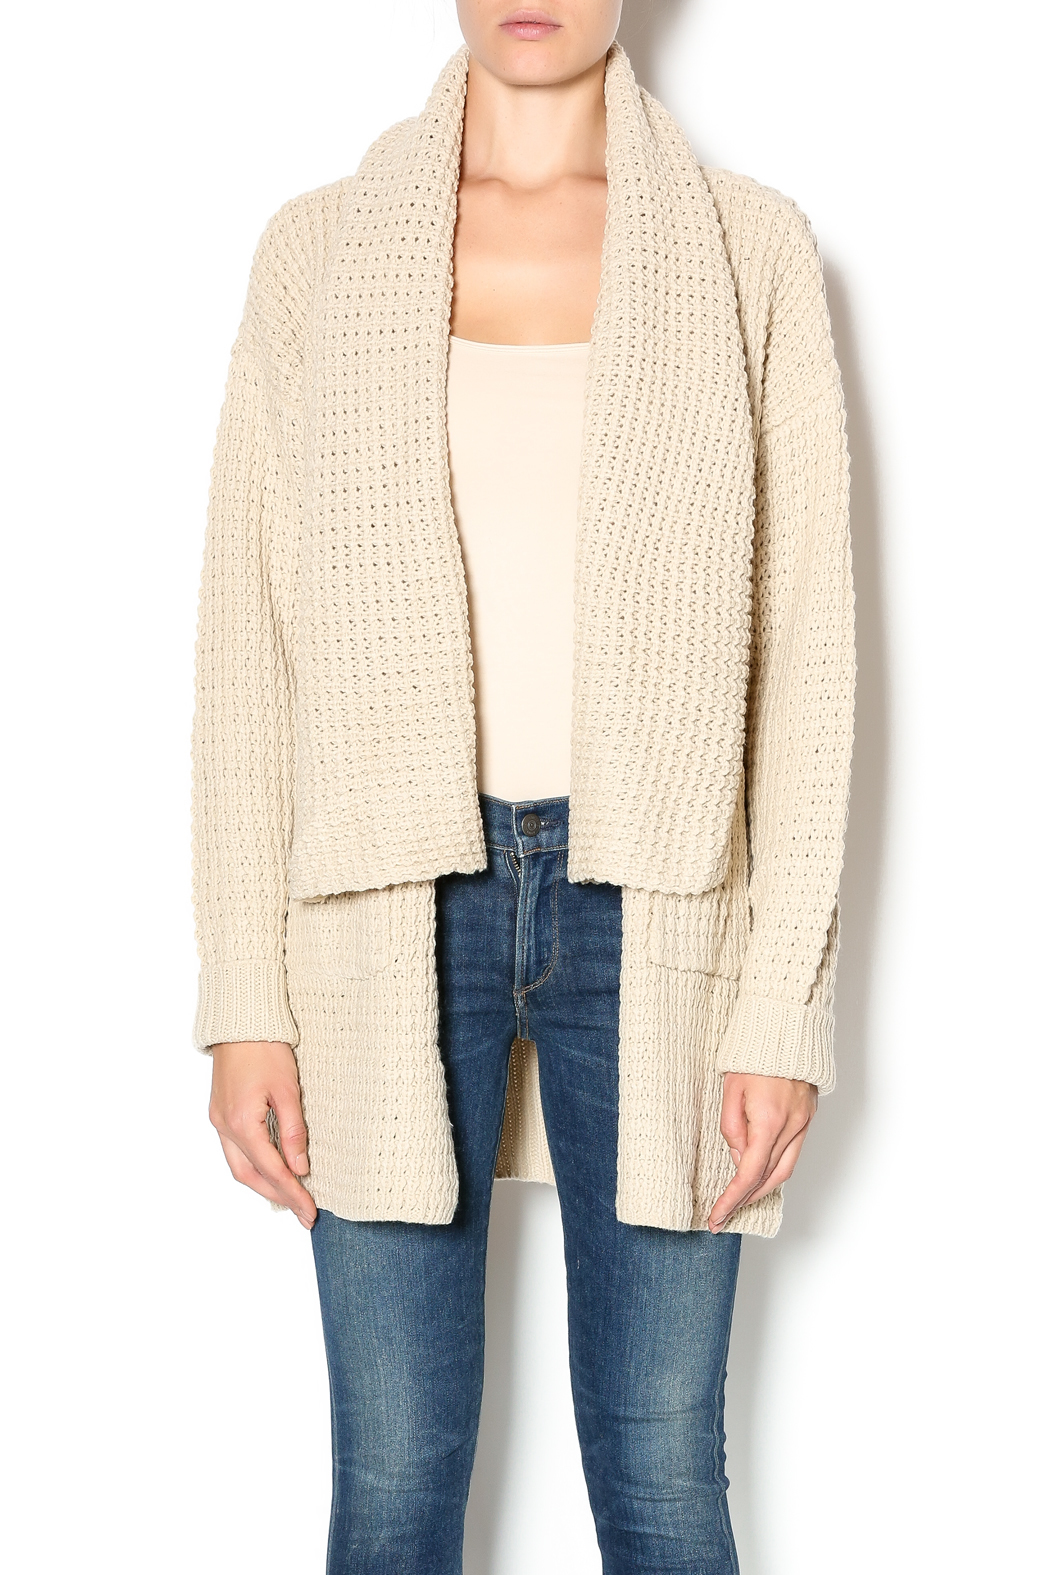 POL Tan Oversized Sweater from Mississippi by The Snooty Owl ...